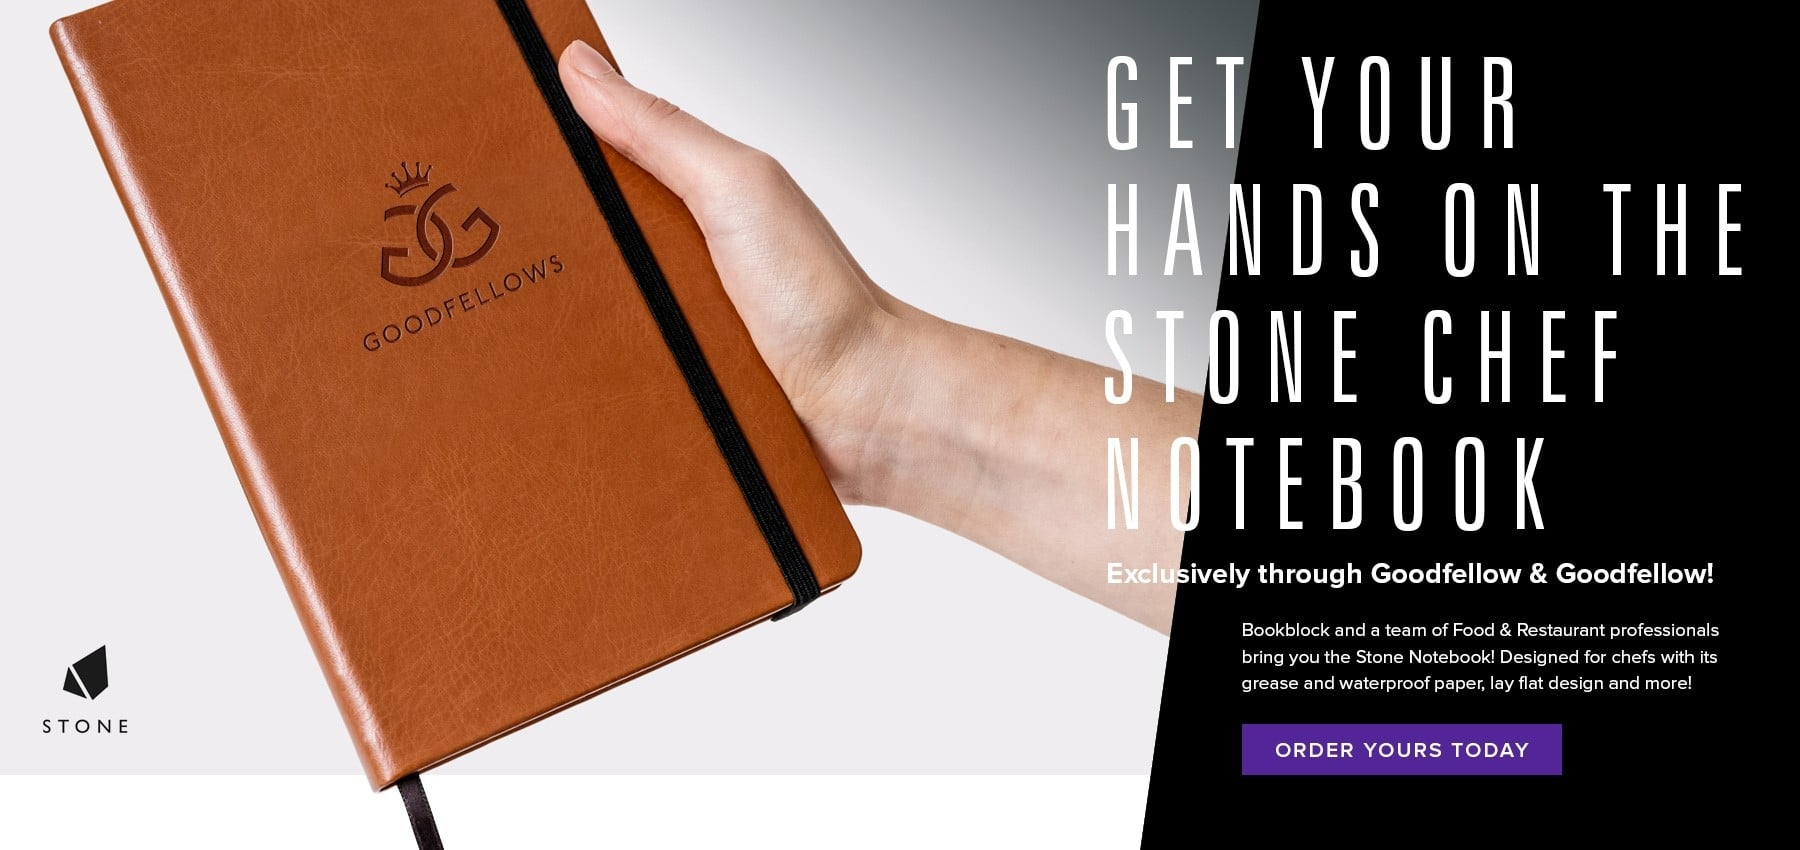 The Stone Notebook